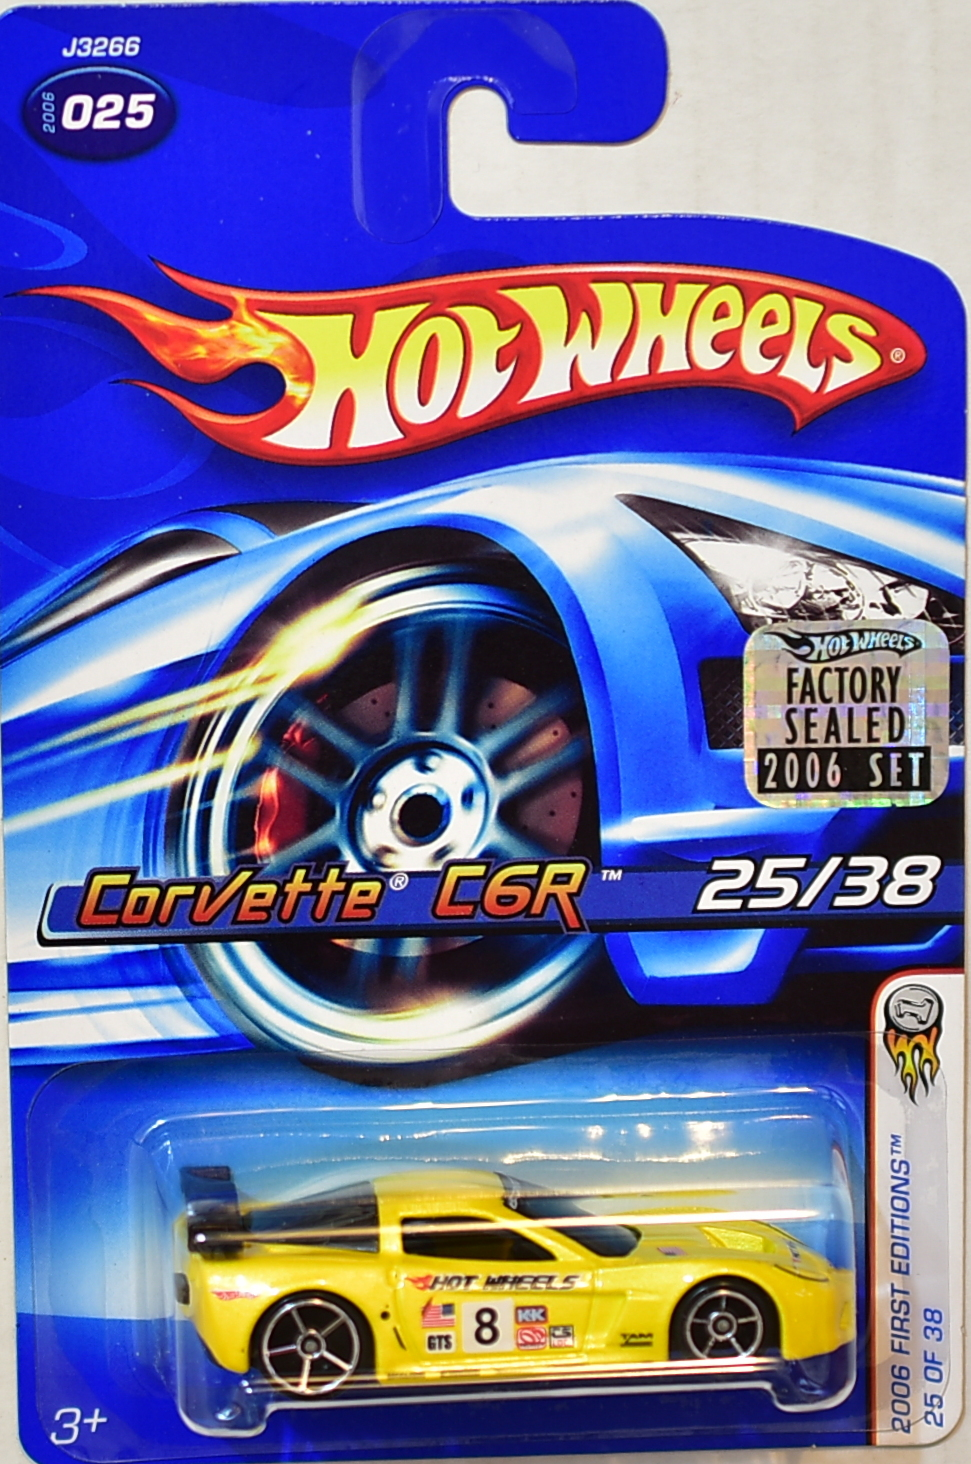 HOT WHEELS 2006 FIRST EDITIONS CORVETTE C6R #025 YELLOW FACTORY SEALED